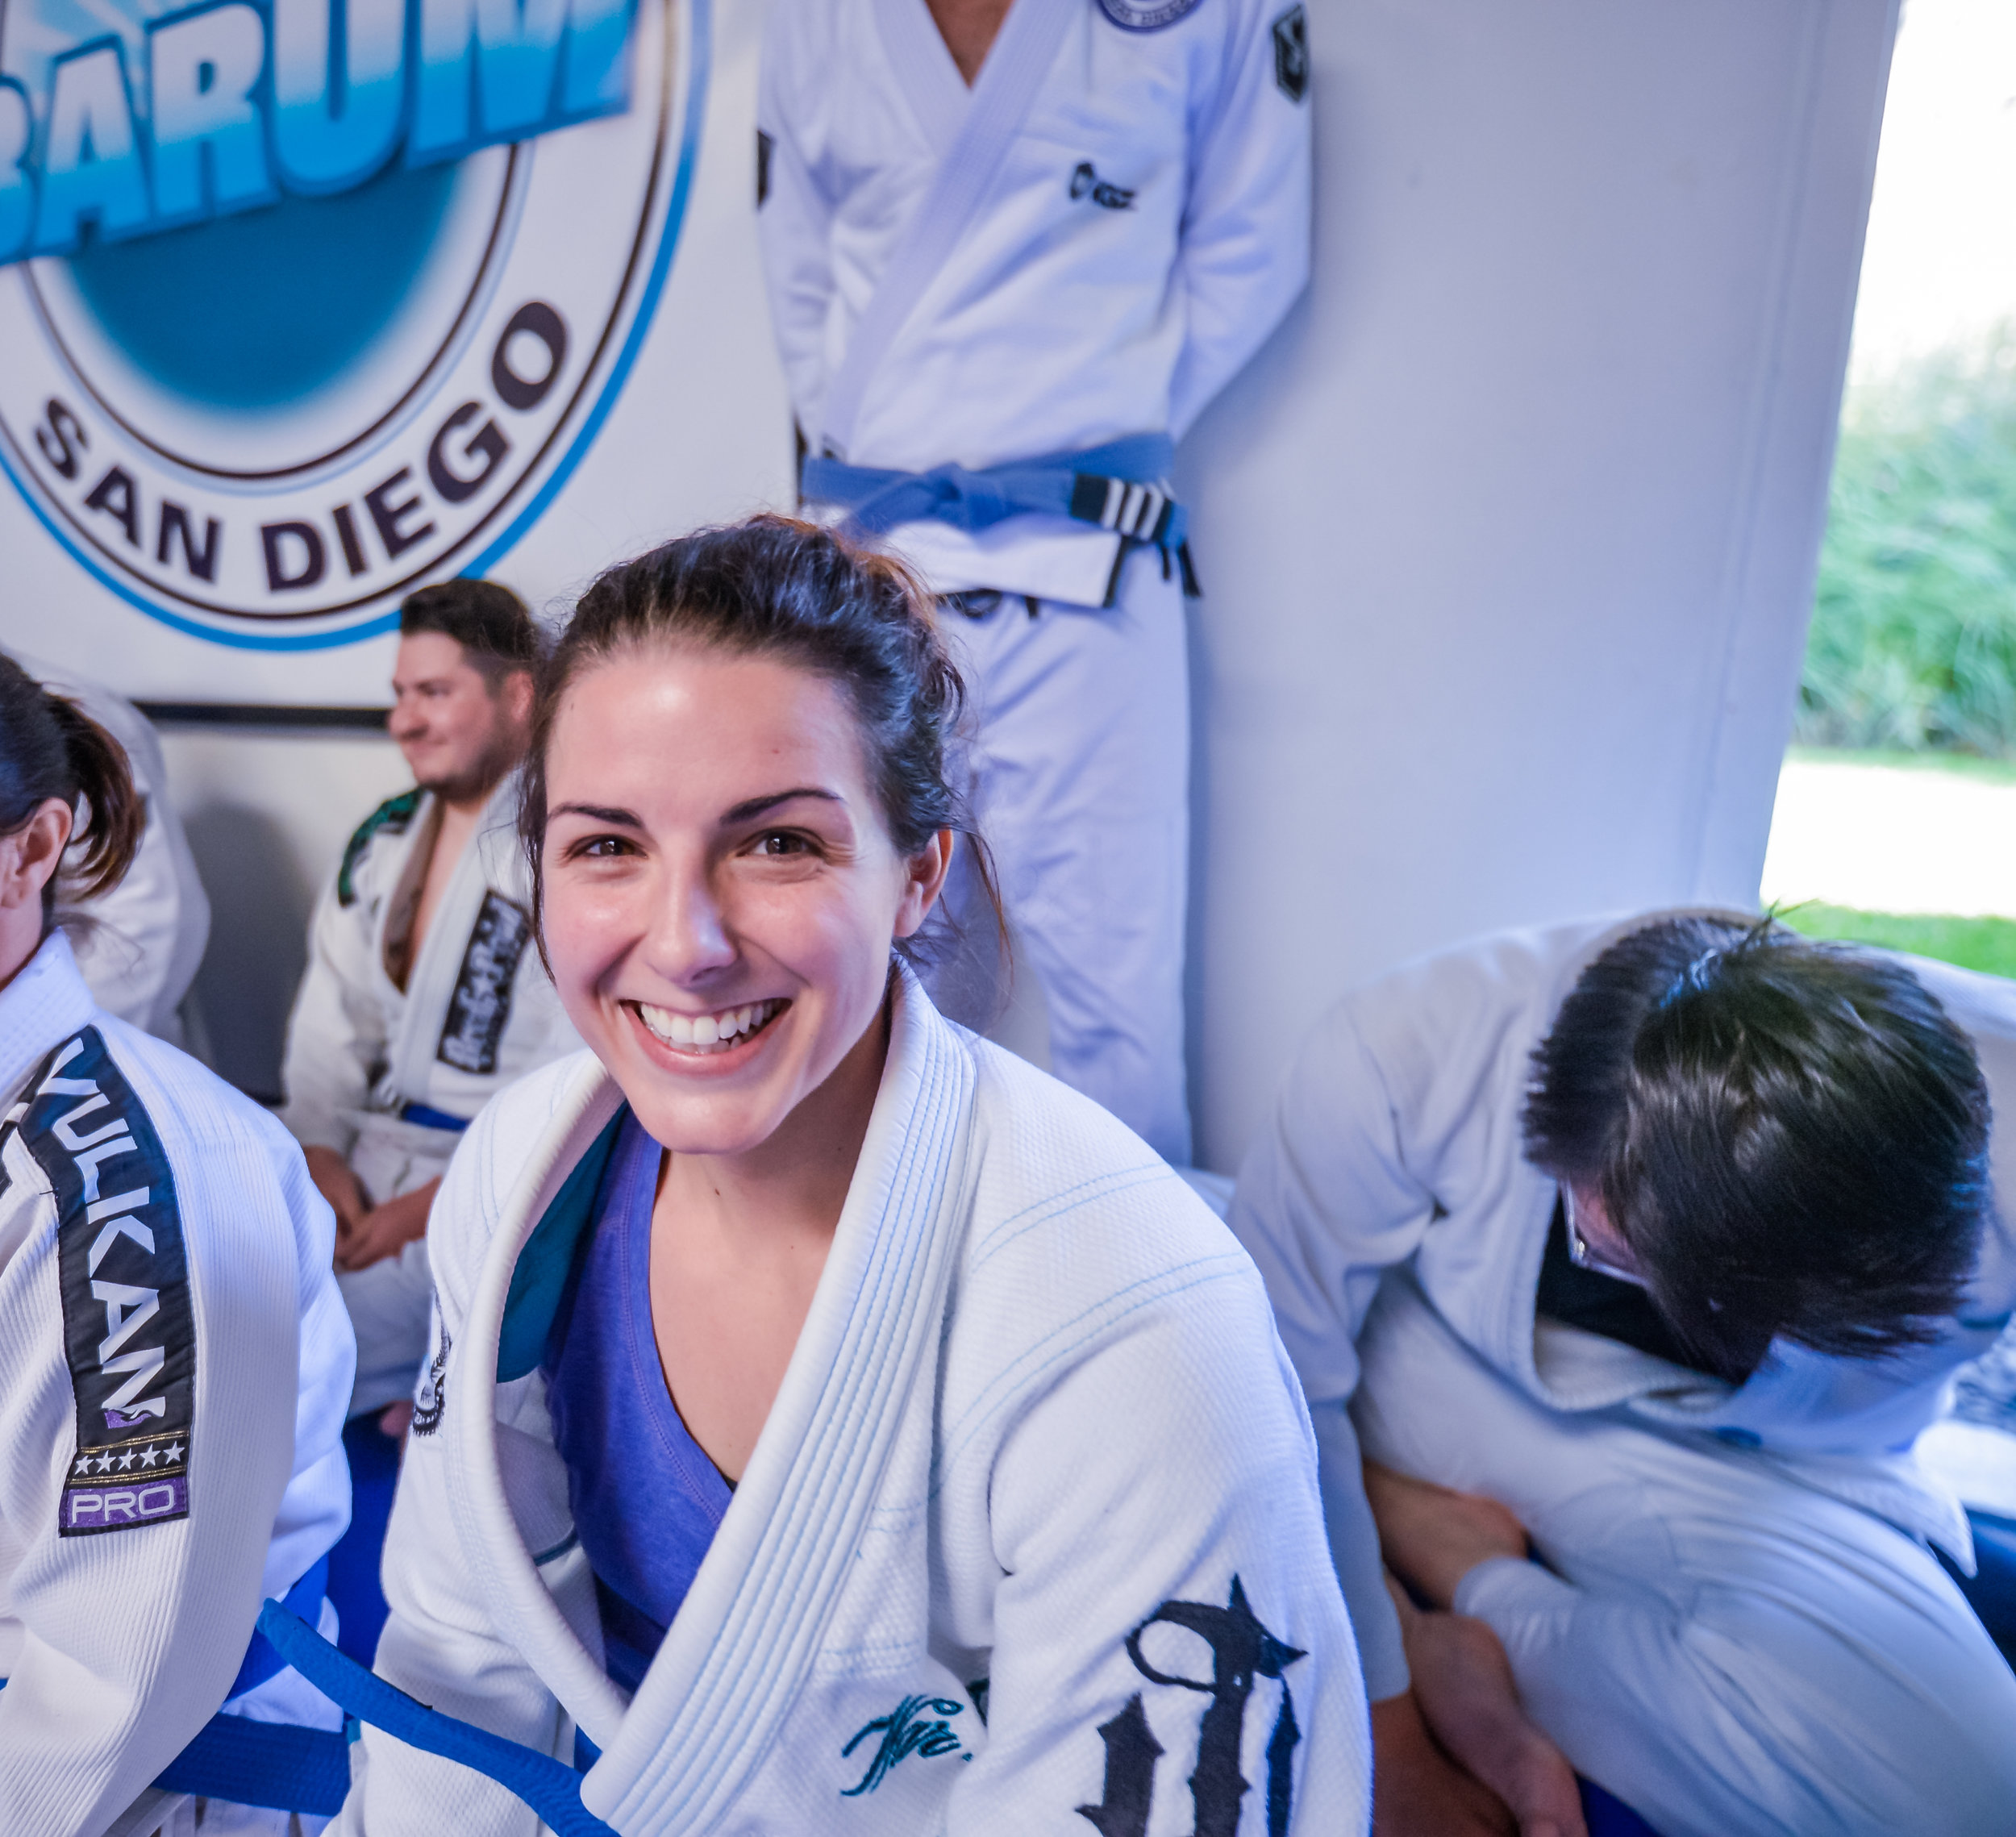 All smiles as a Brazilian Jiu Jitsu Blue Belt